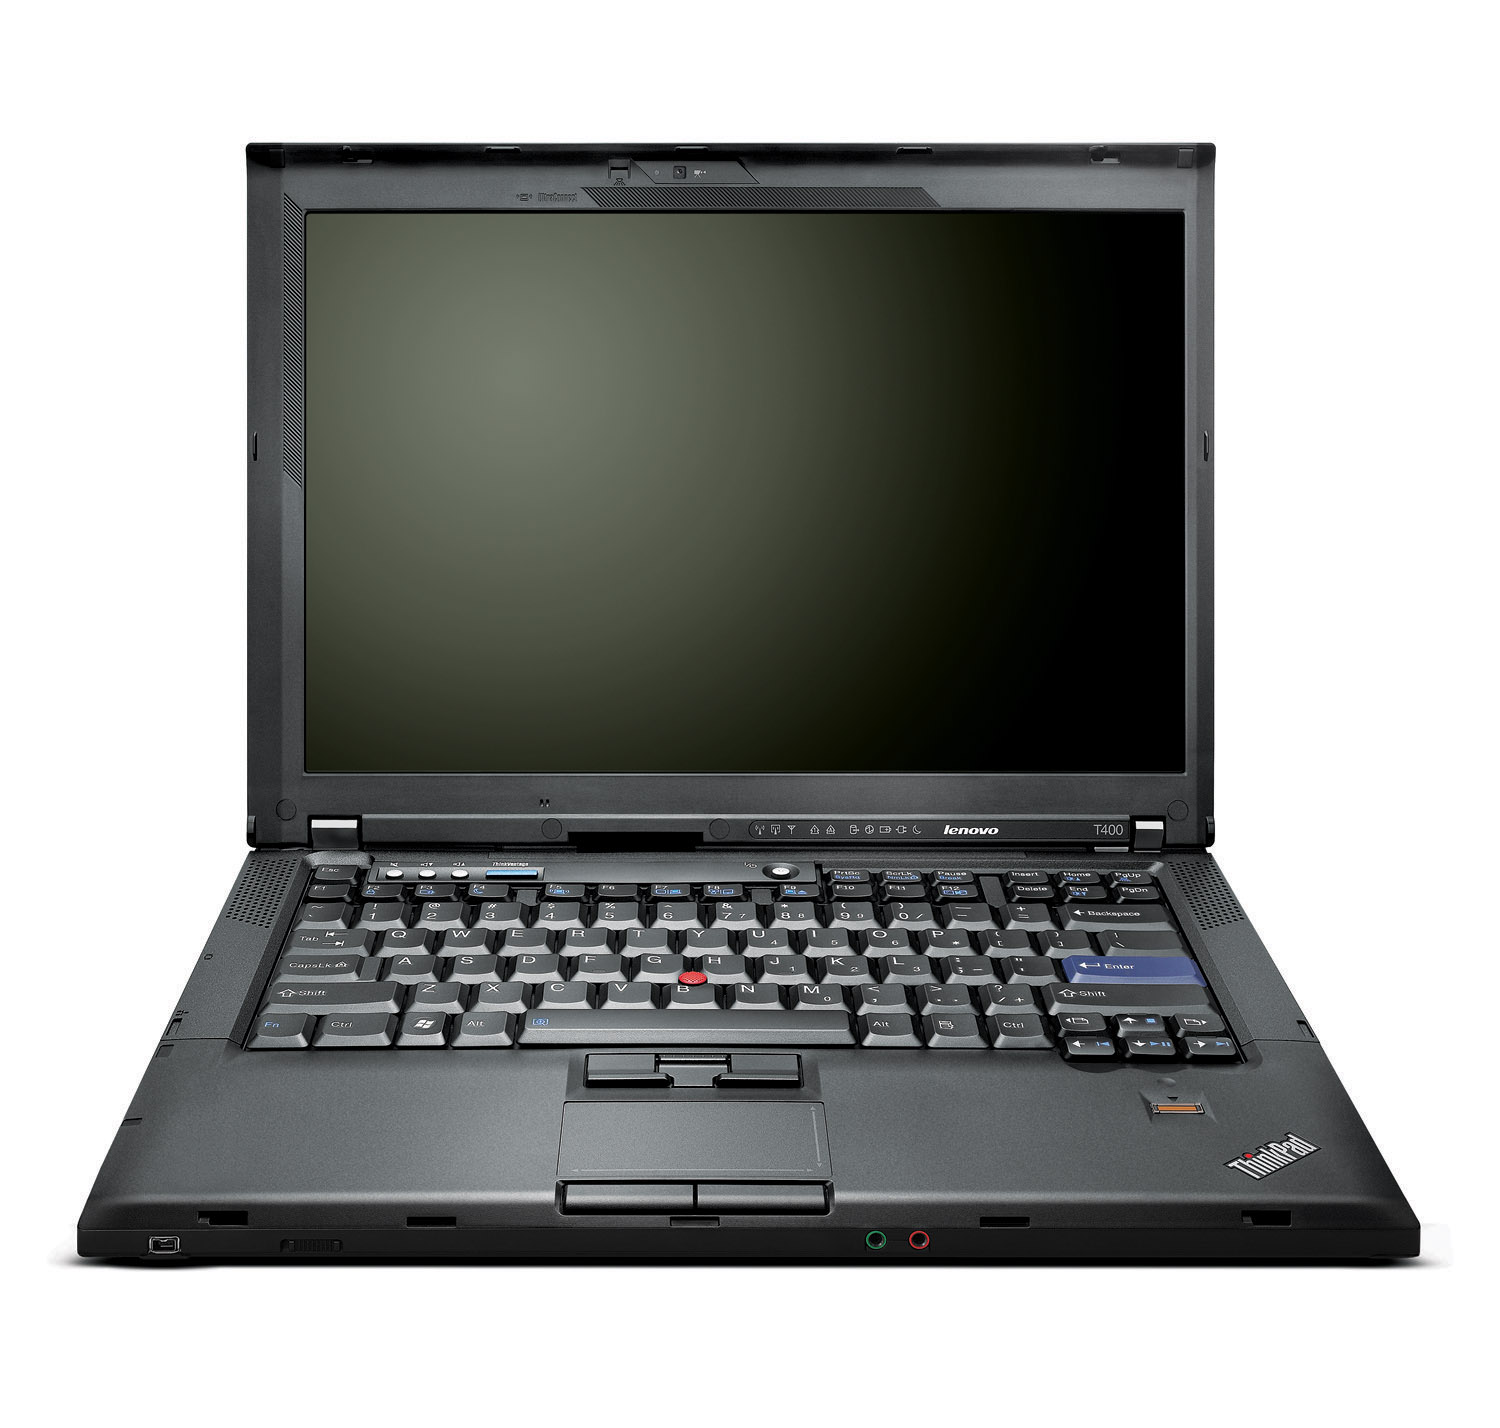 Thinkpad T400 / P9600 2,66GHz / 4GB / 160GB HDD / WIN 10